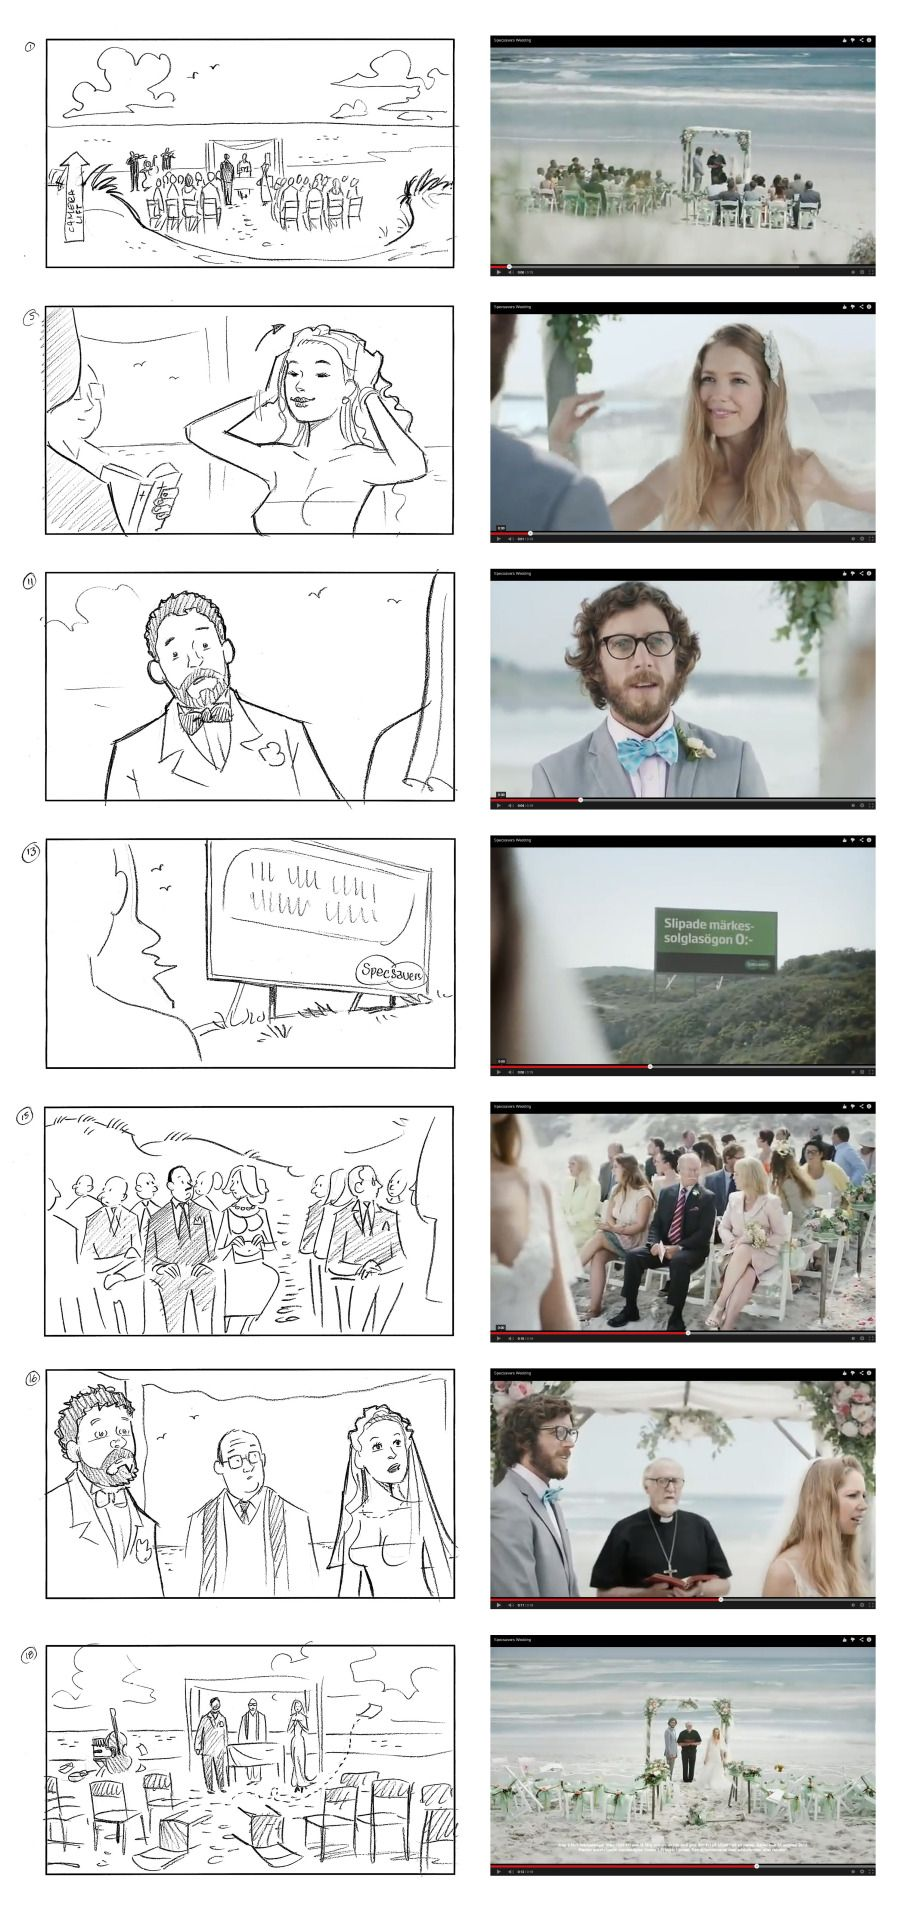 Storyboard Vs Actual Film Specsavers Commercial Director Mats